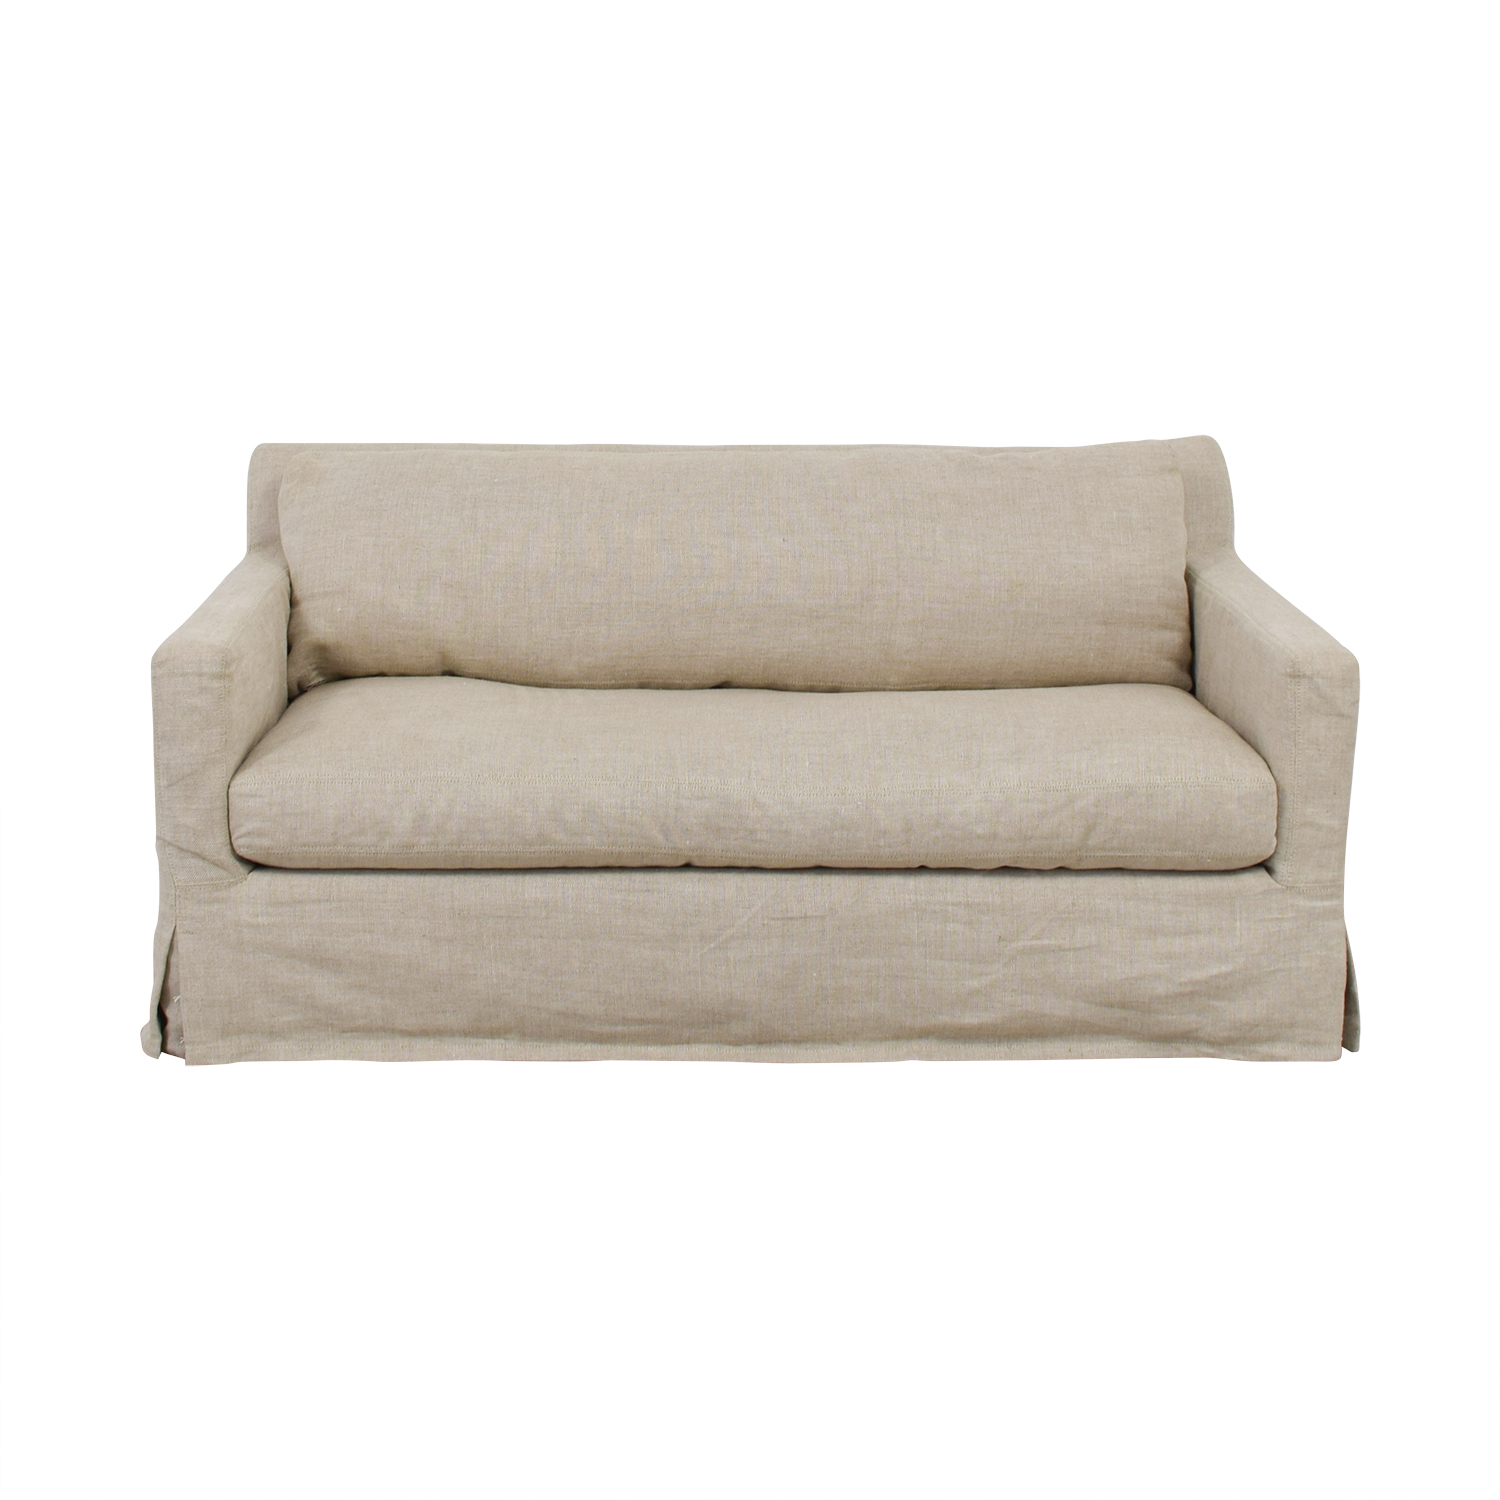 Restoration Hardware Restoration Hardware Slipcovered Belgian Track Arm Sofa on sale